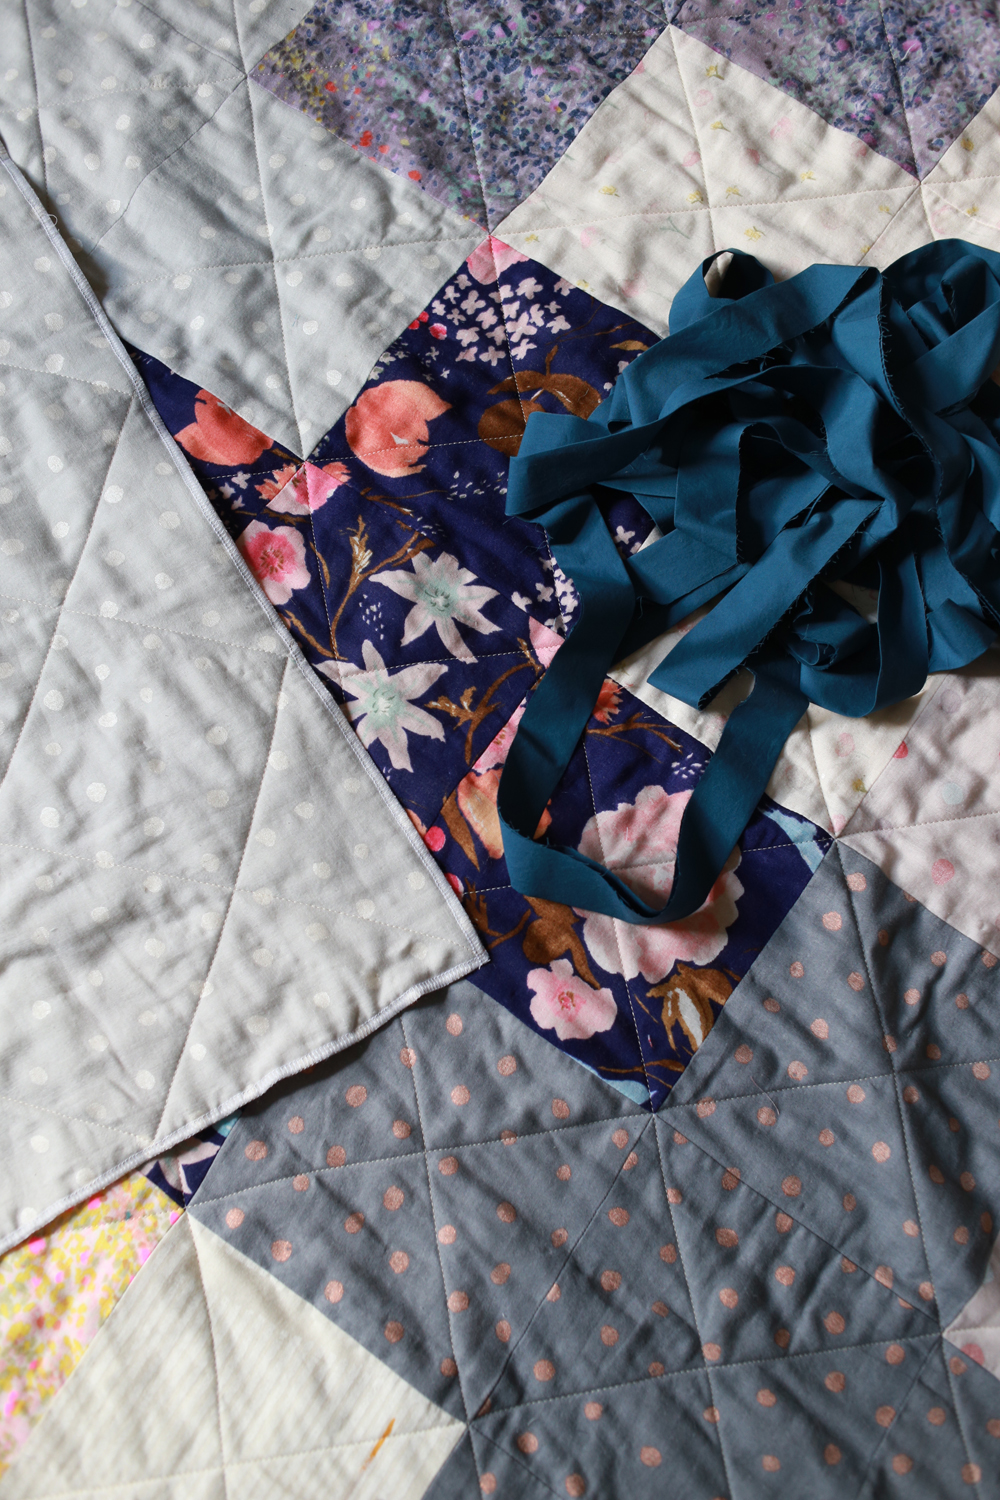 https://www.incolororder.com/2019/07/all-about-quilting-with-double-gauze.html